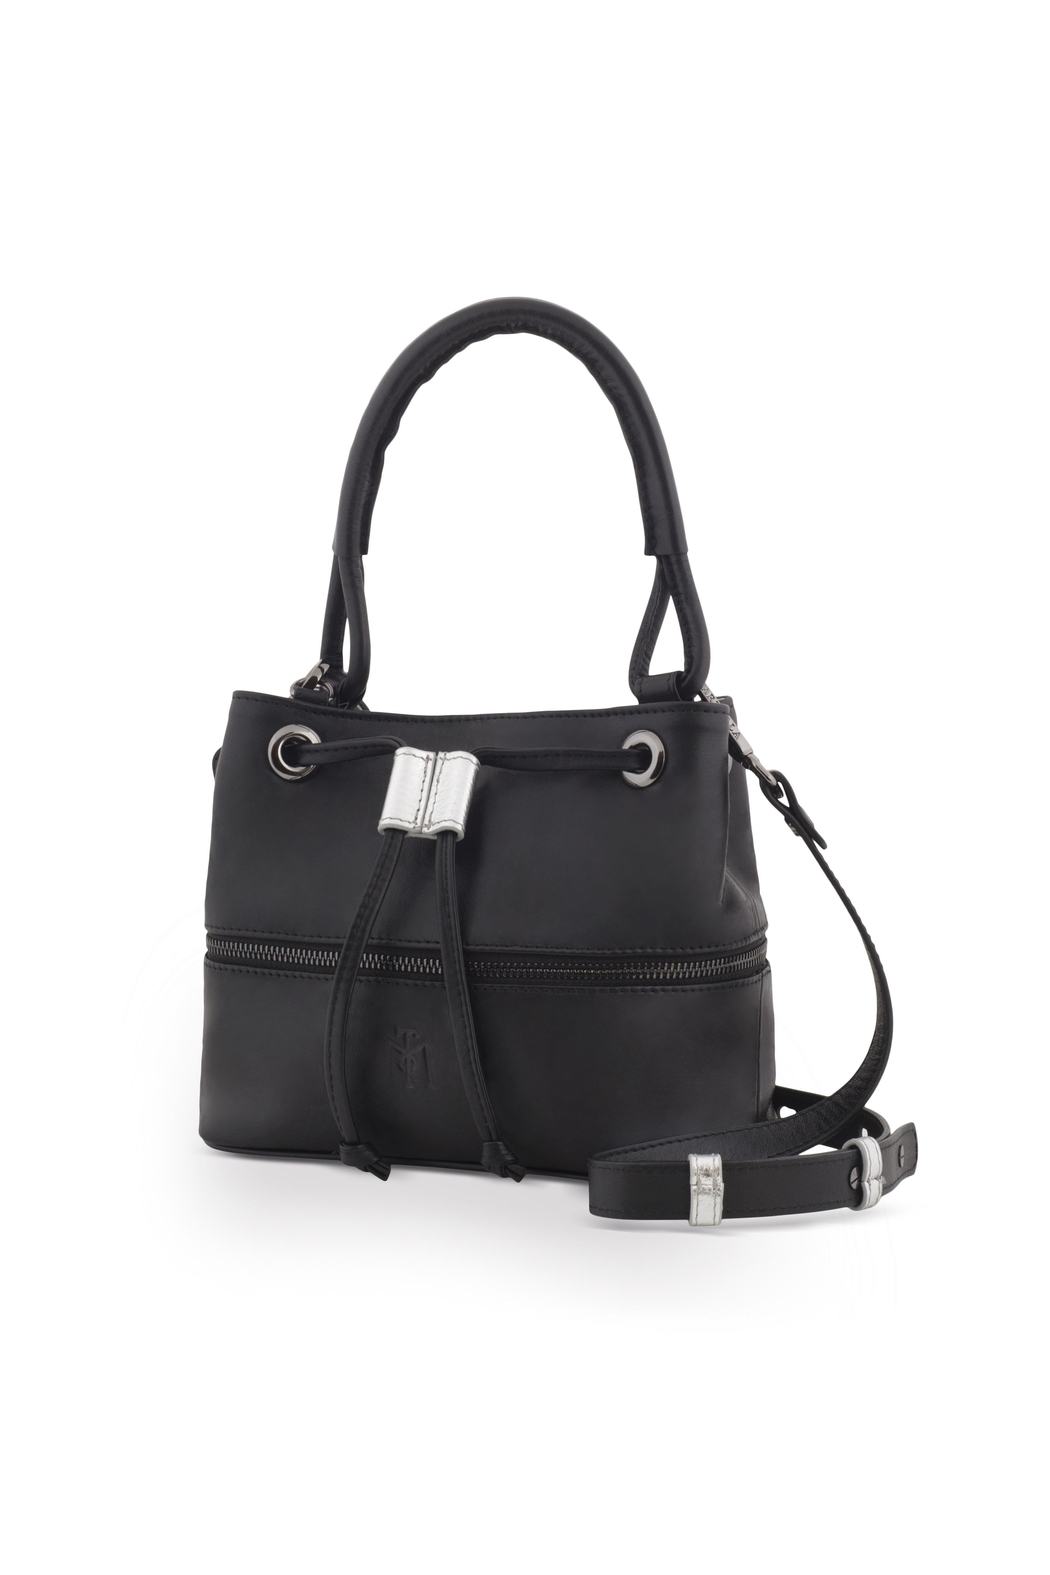 Martella Bags Black-Silver Bucket Bag - Front Full Image